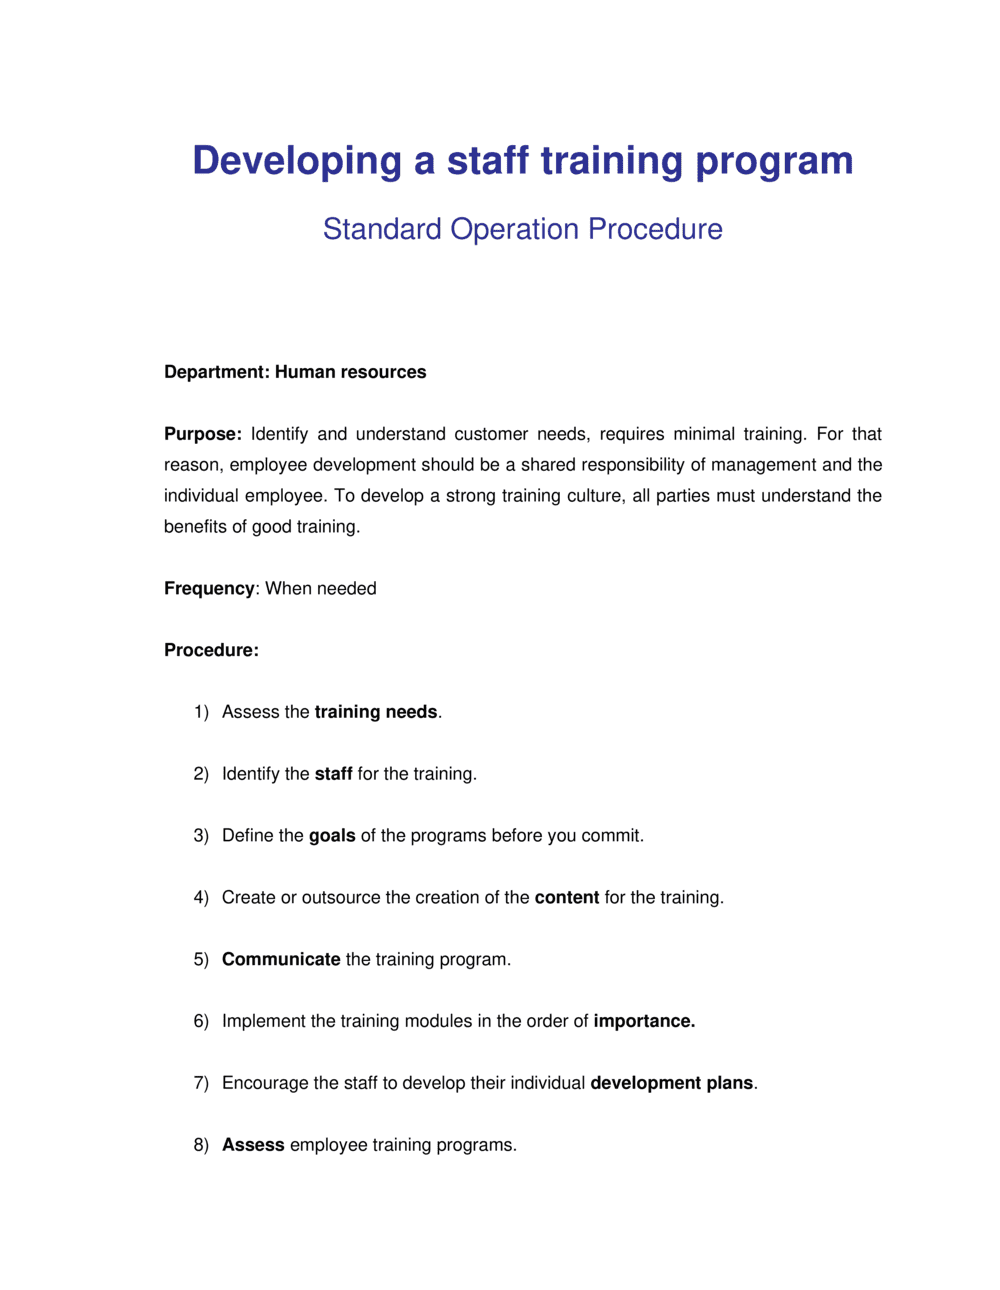 Business-in-a-Box's How to Develop a Staff Training Program Template